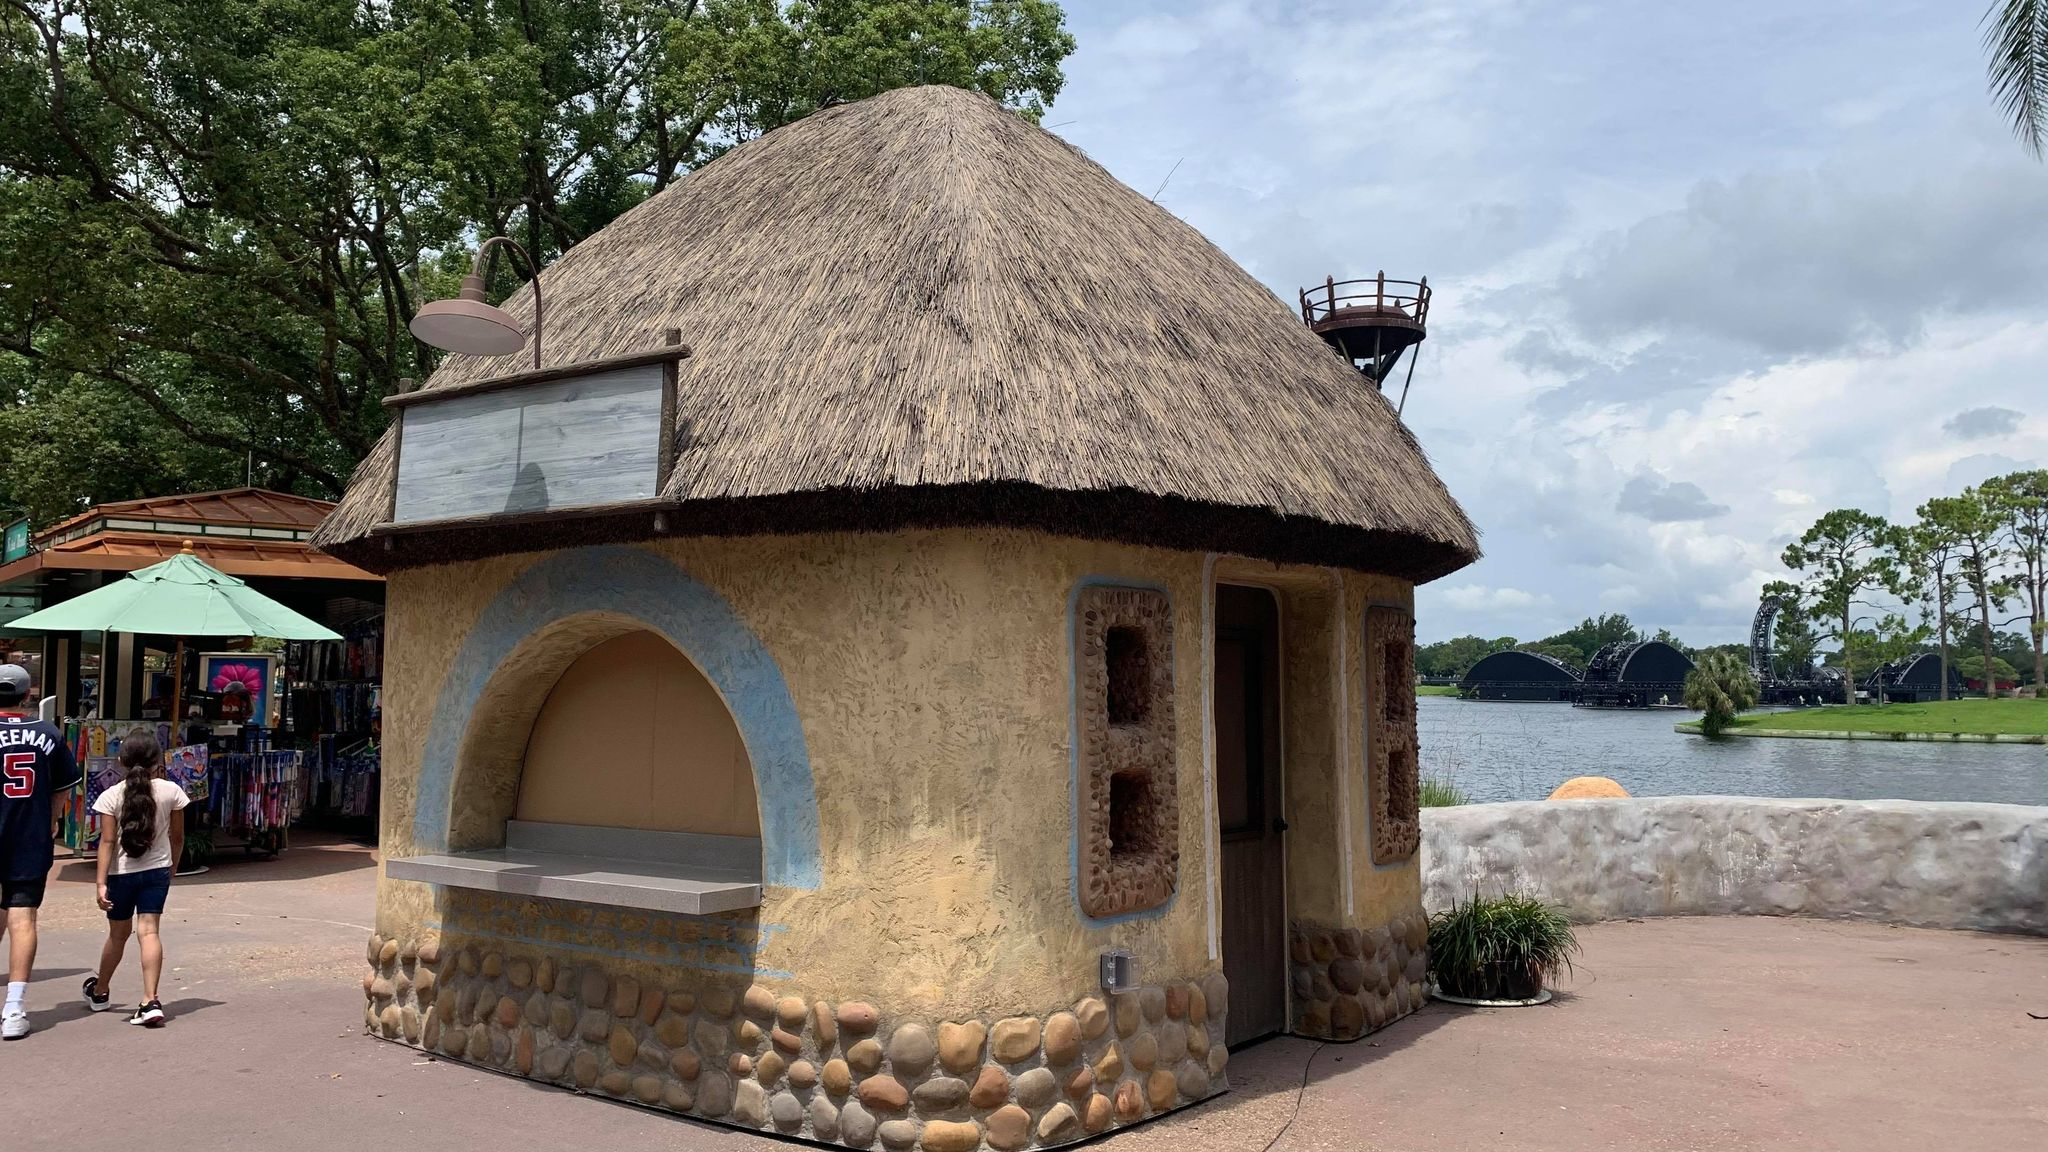 New Food & Wine Festival Booths Now in Epcot 2